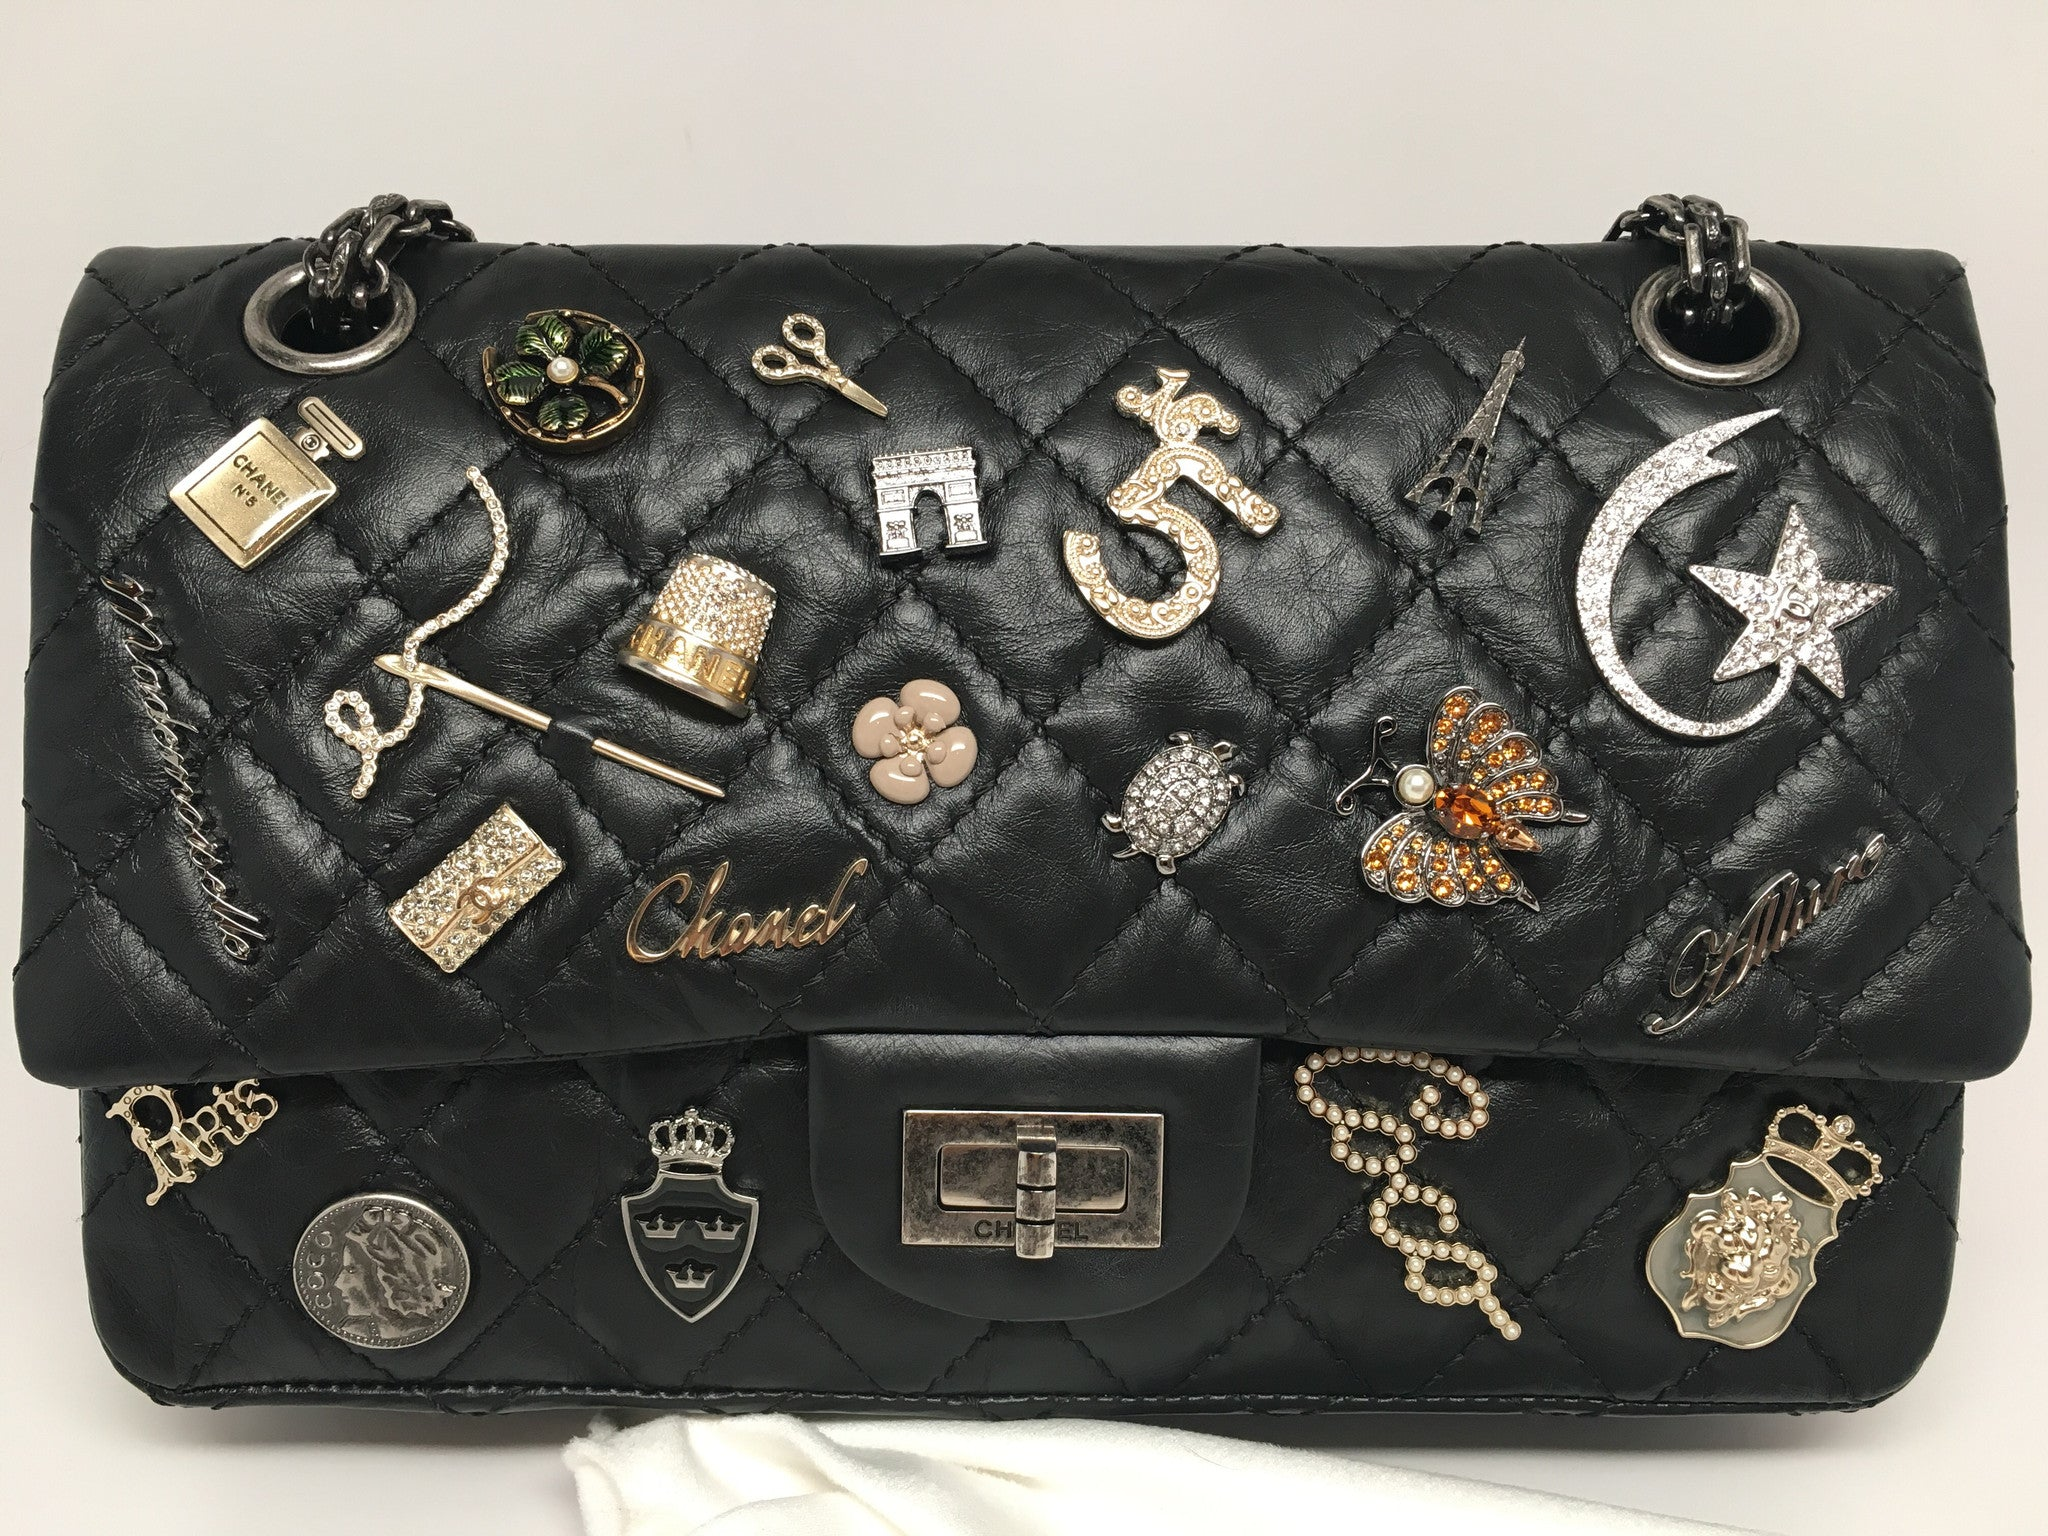 ce680023c7df CHANEL VINTAGE LIMITED EDITION BLACK QUILTED LUCKY CHARM 2.55 FLAP BAG –  Hebster Boutique